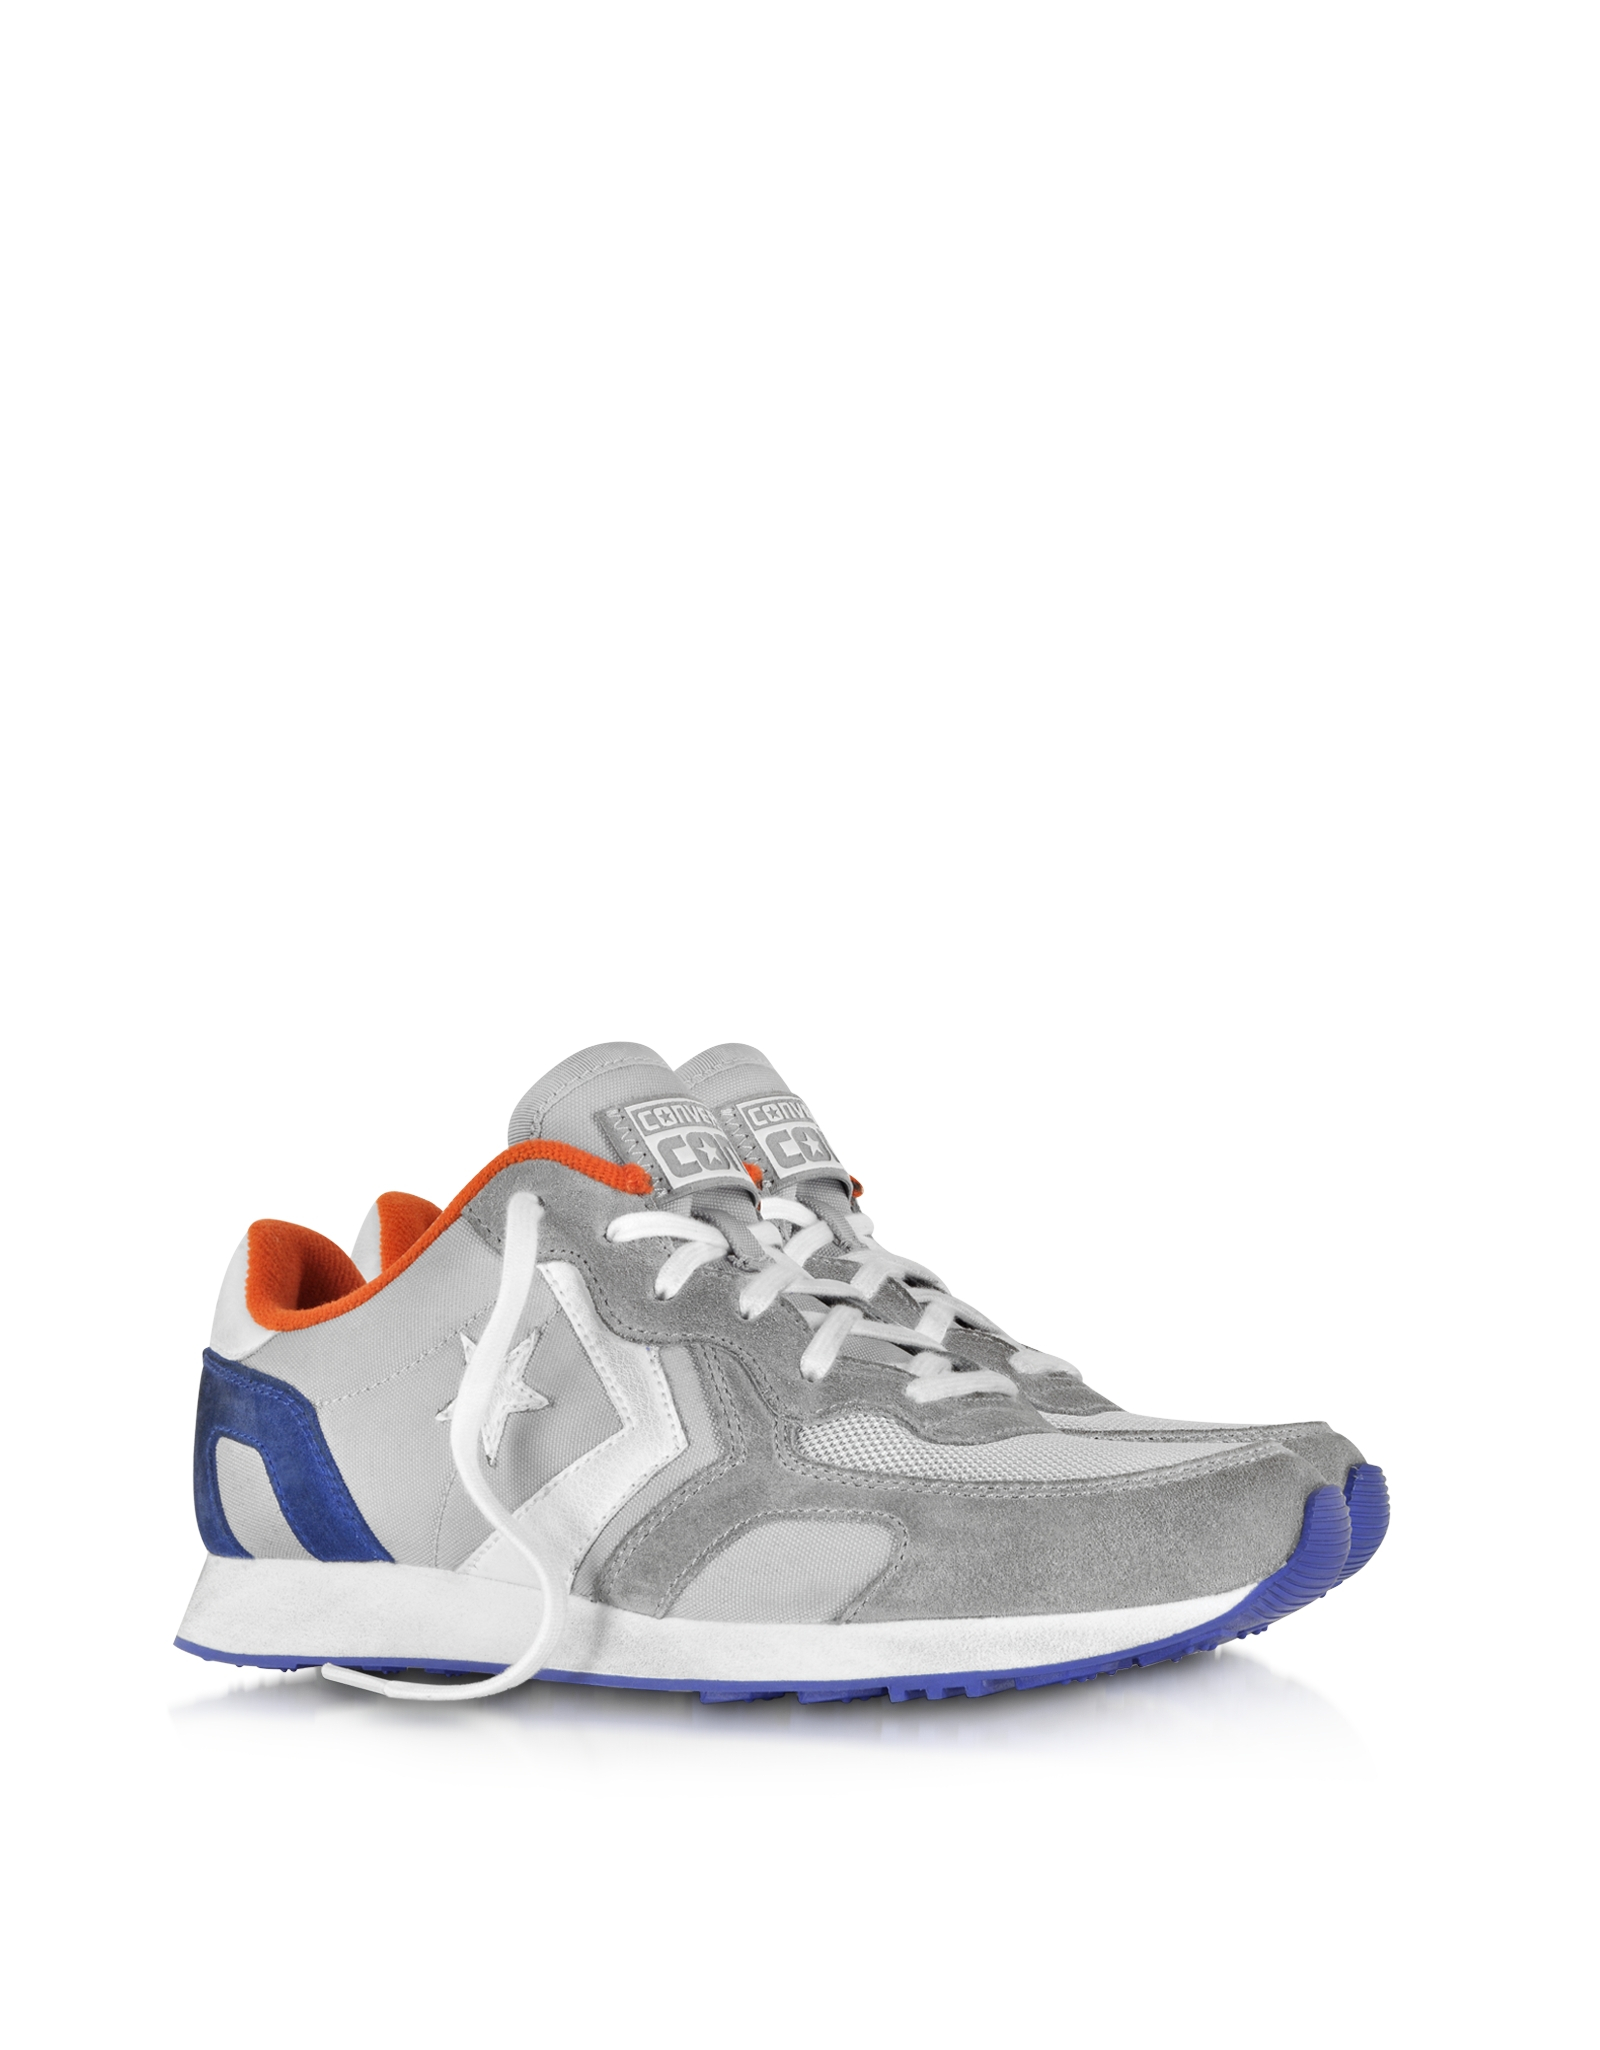 Lyst - Converse Auckland Racer Ox Gray Orange Blue Nylon And Suede ... bf449cb14